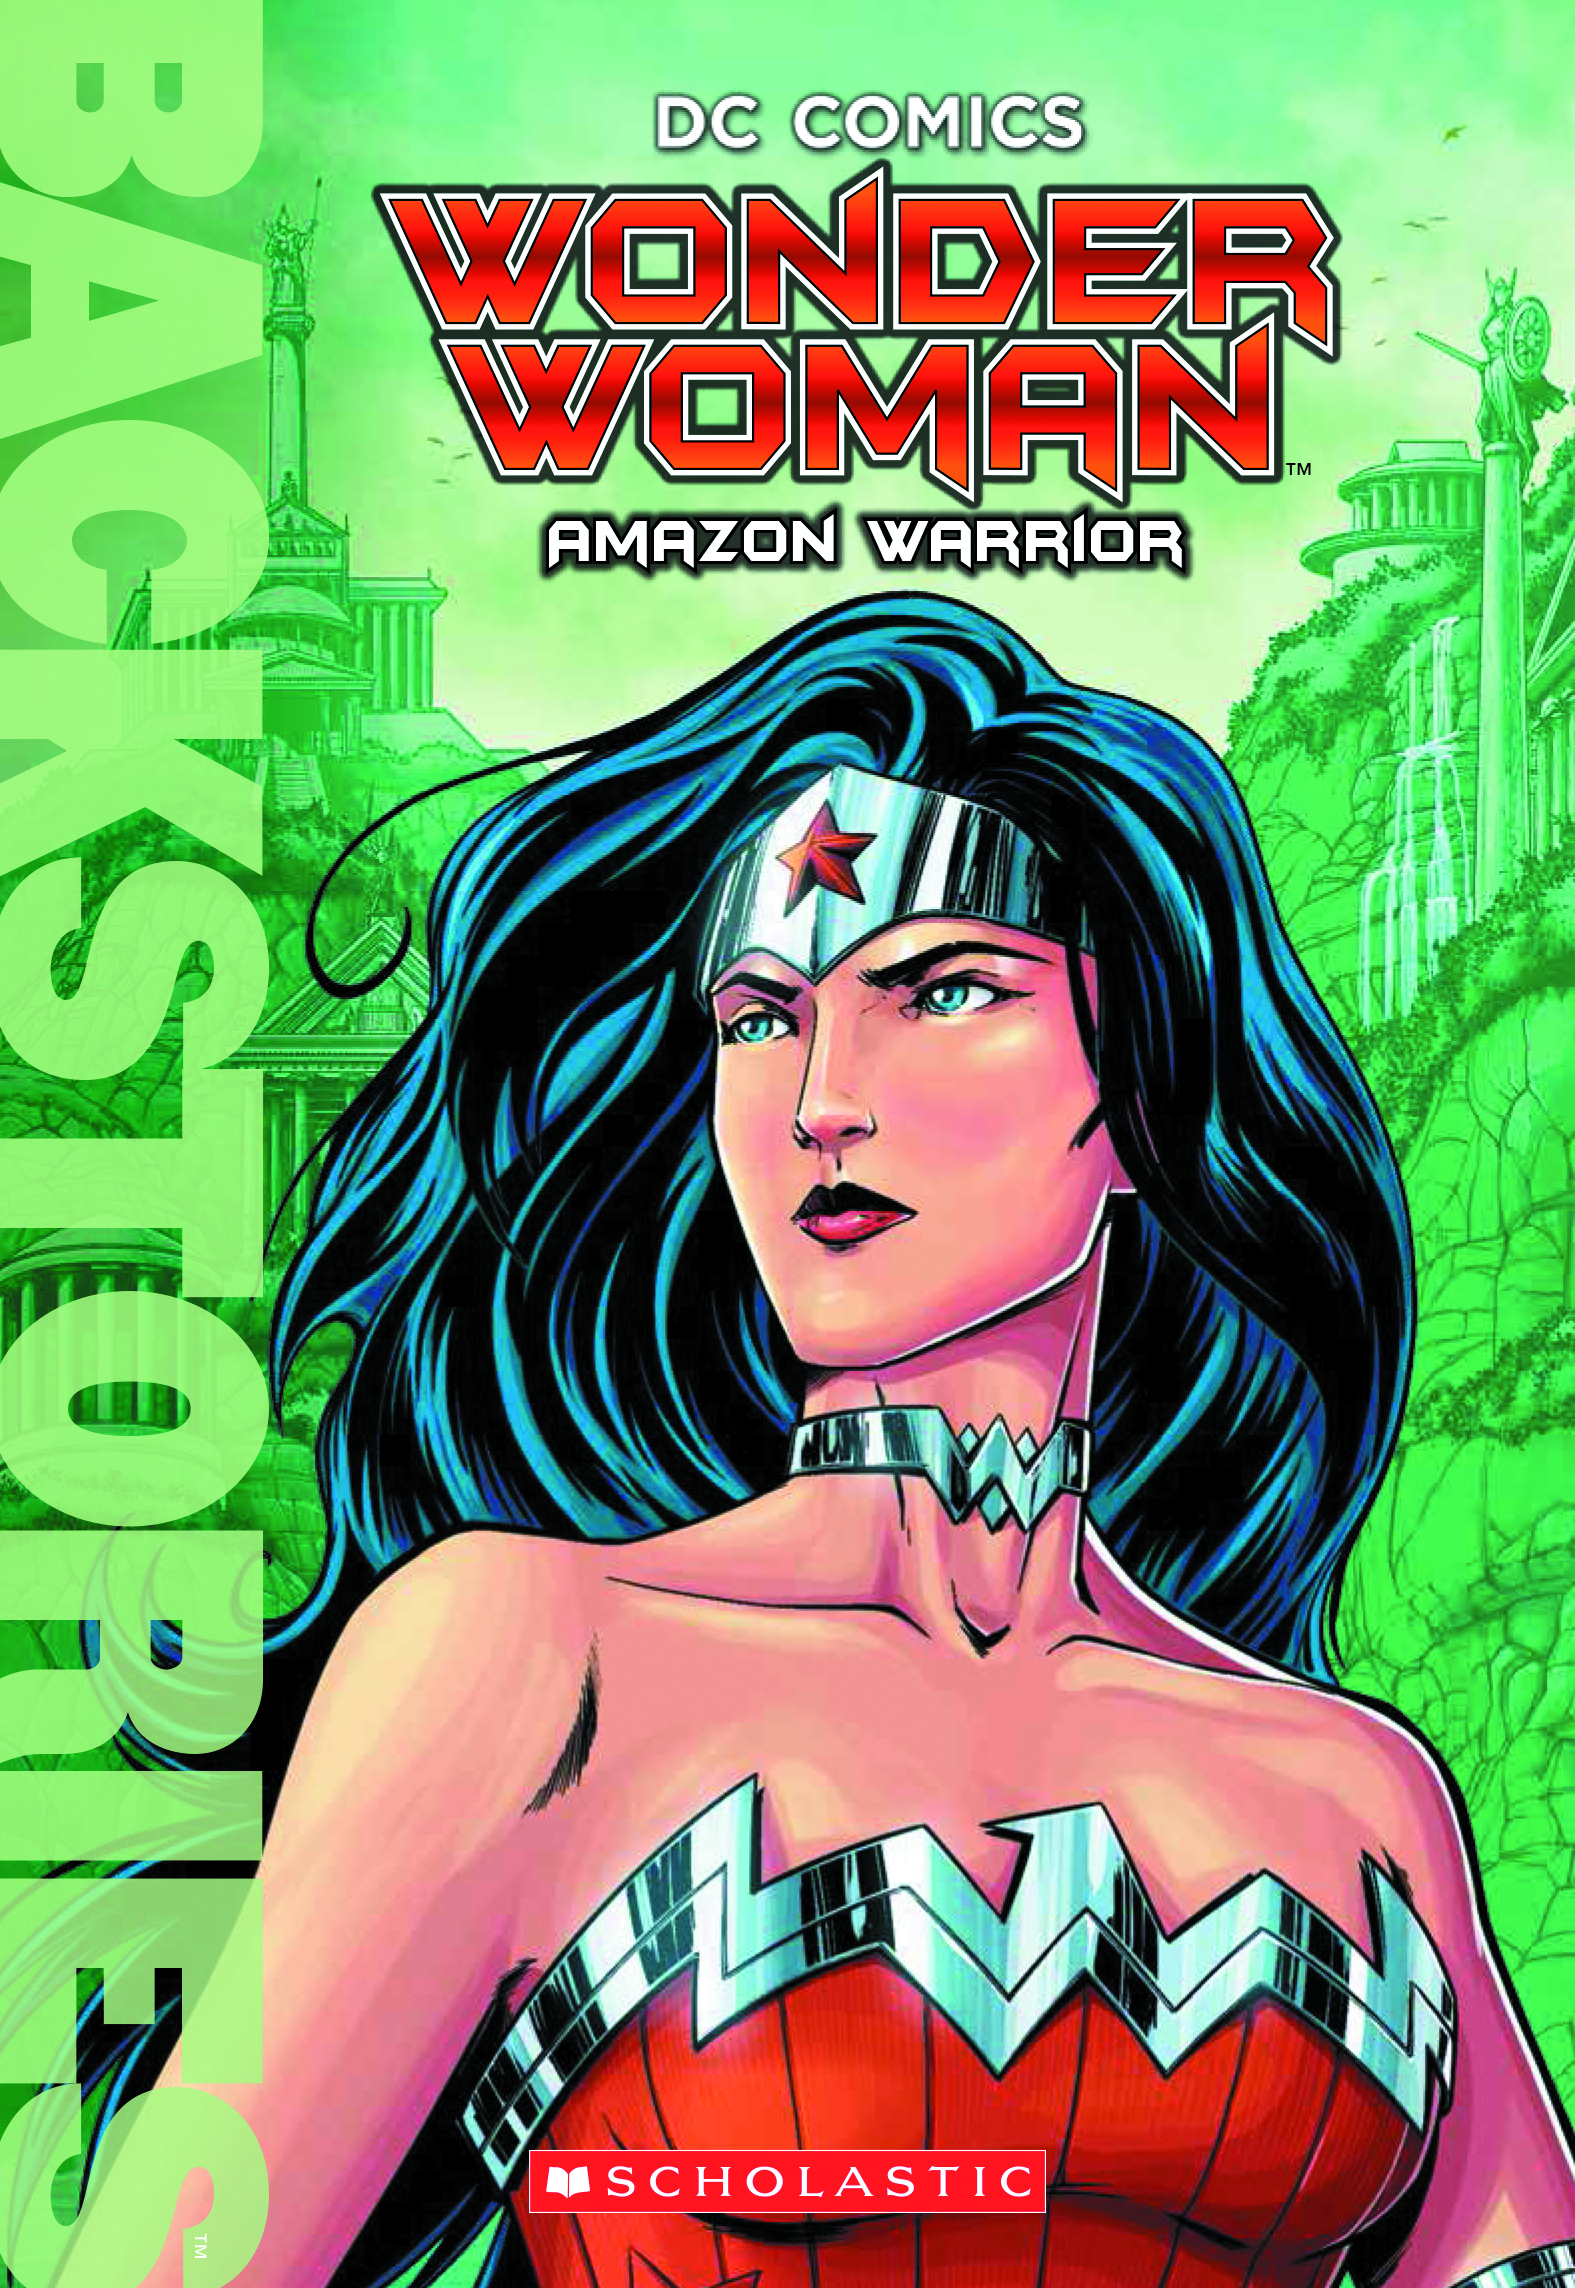 WONDER WOMAN AMAZON WARRIOR YR SC